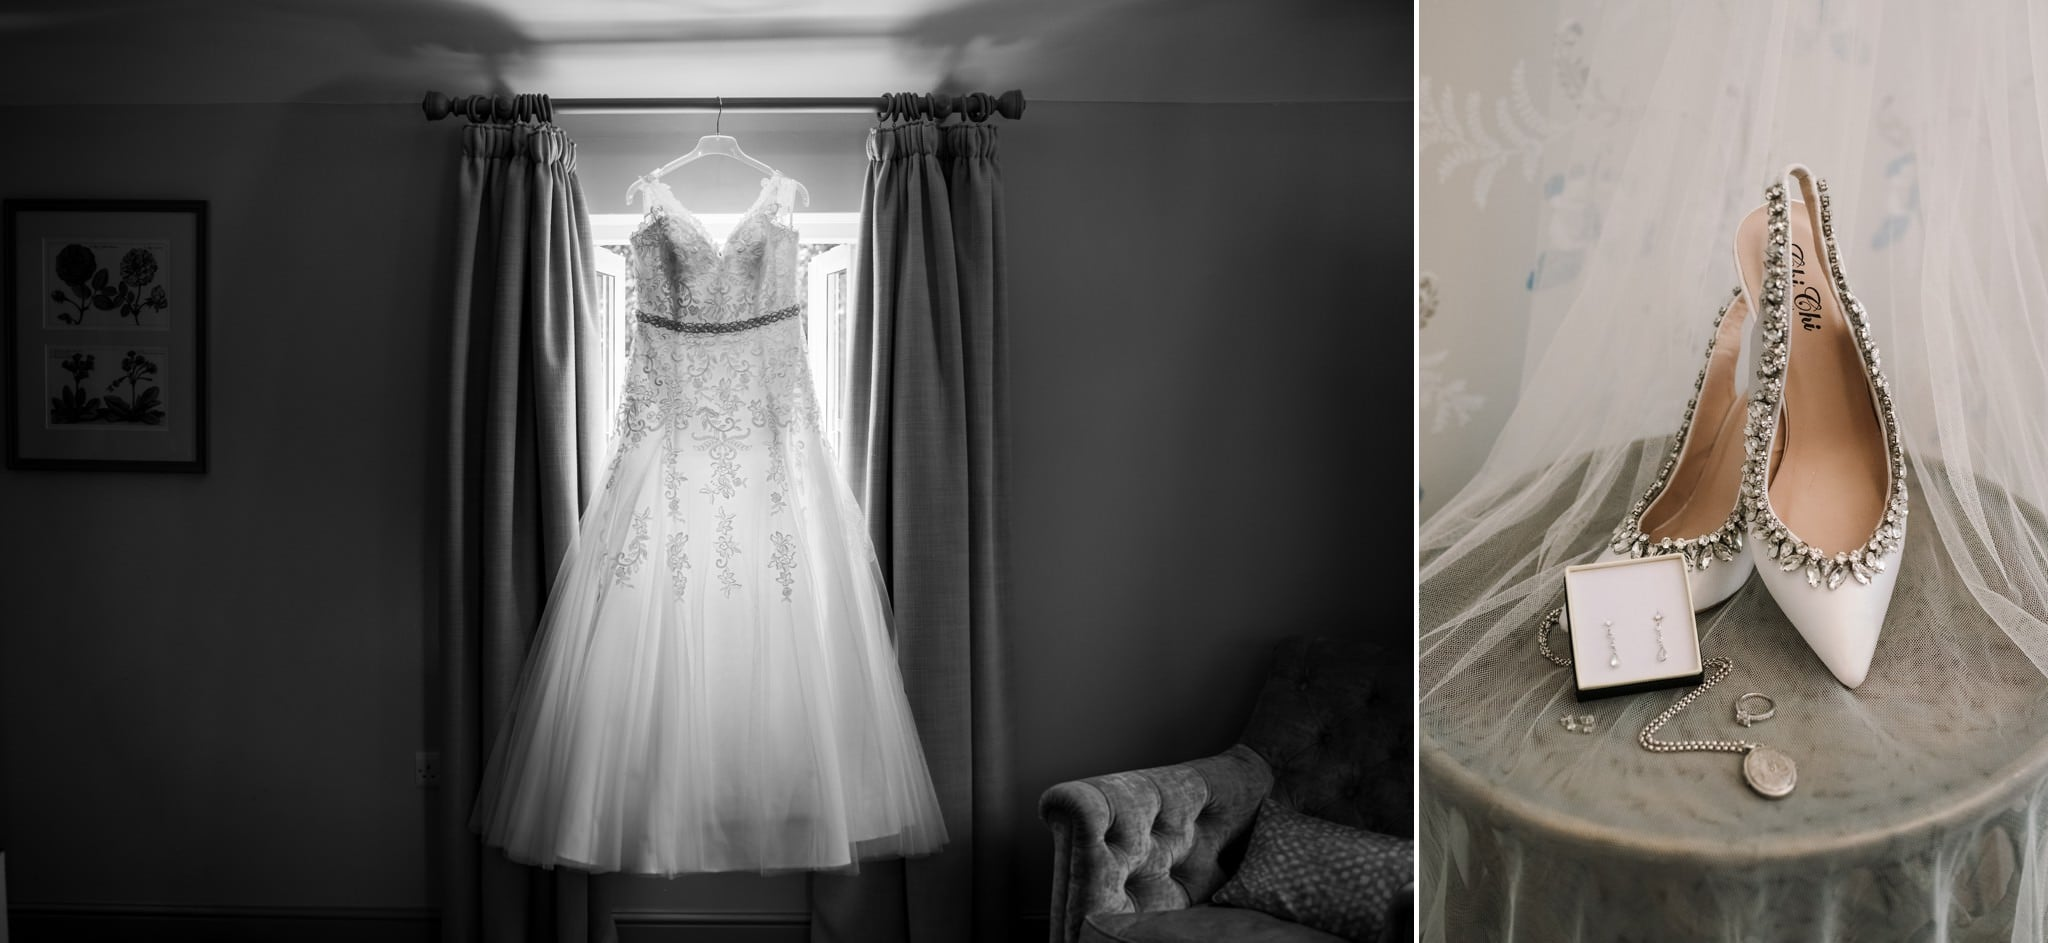 Wedding dress and shoes at Gordleton Mill